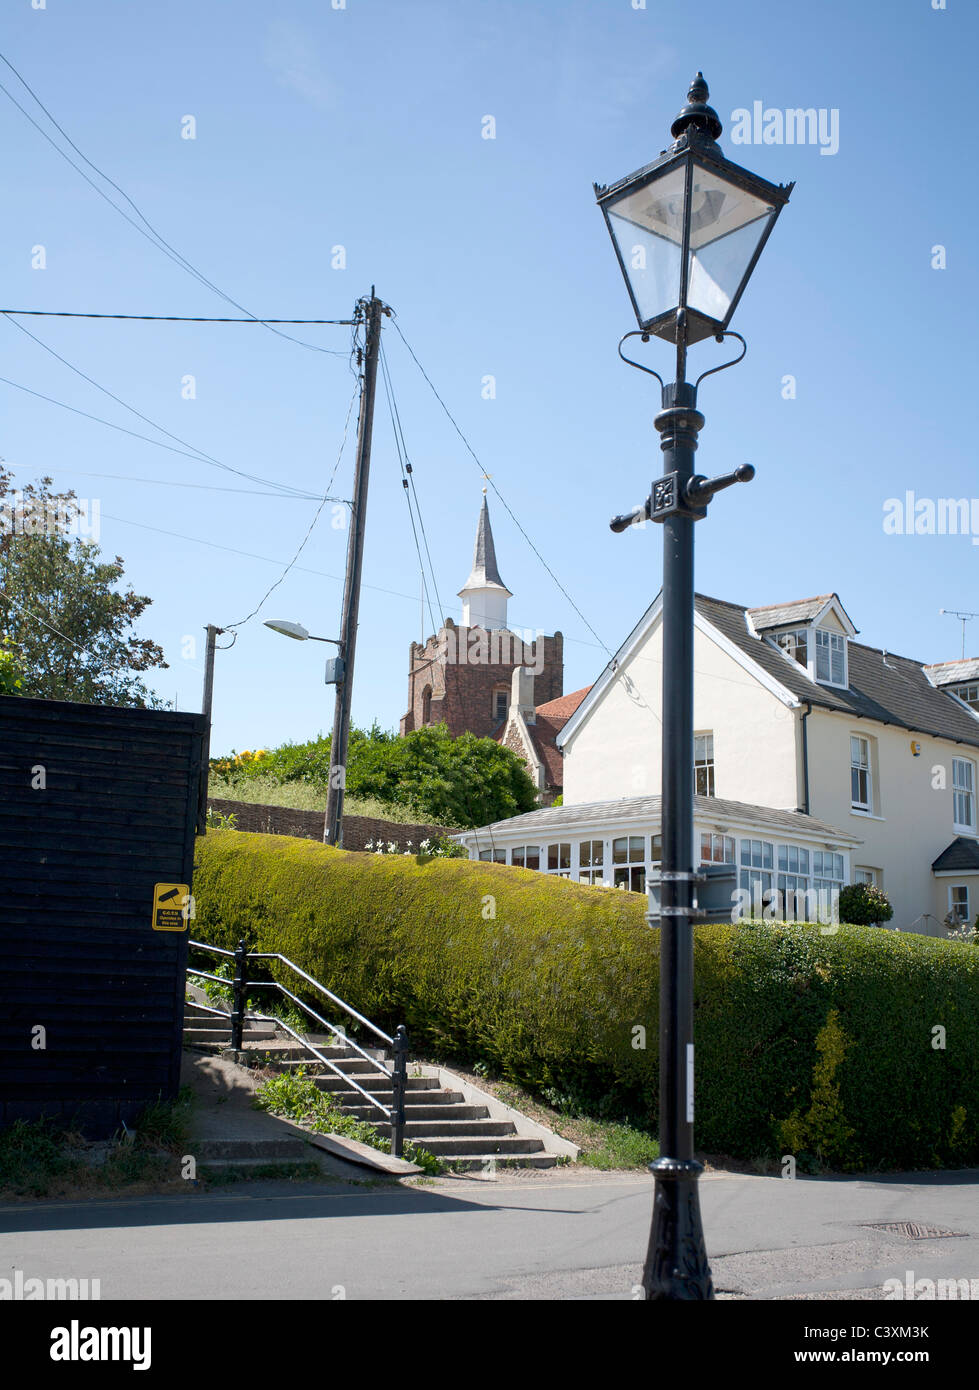 overhead cables in a village - Stock Image